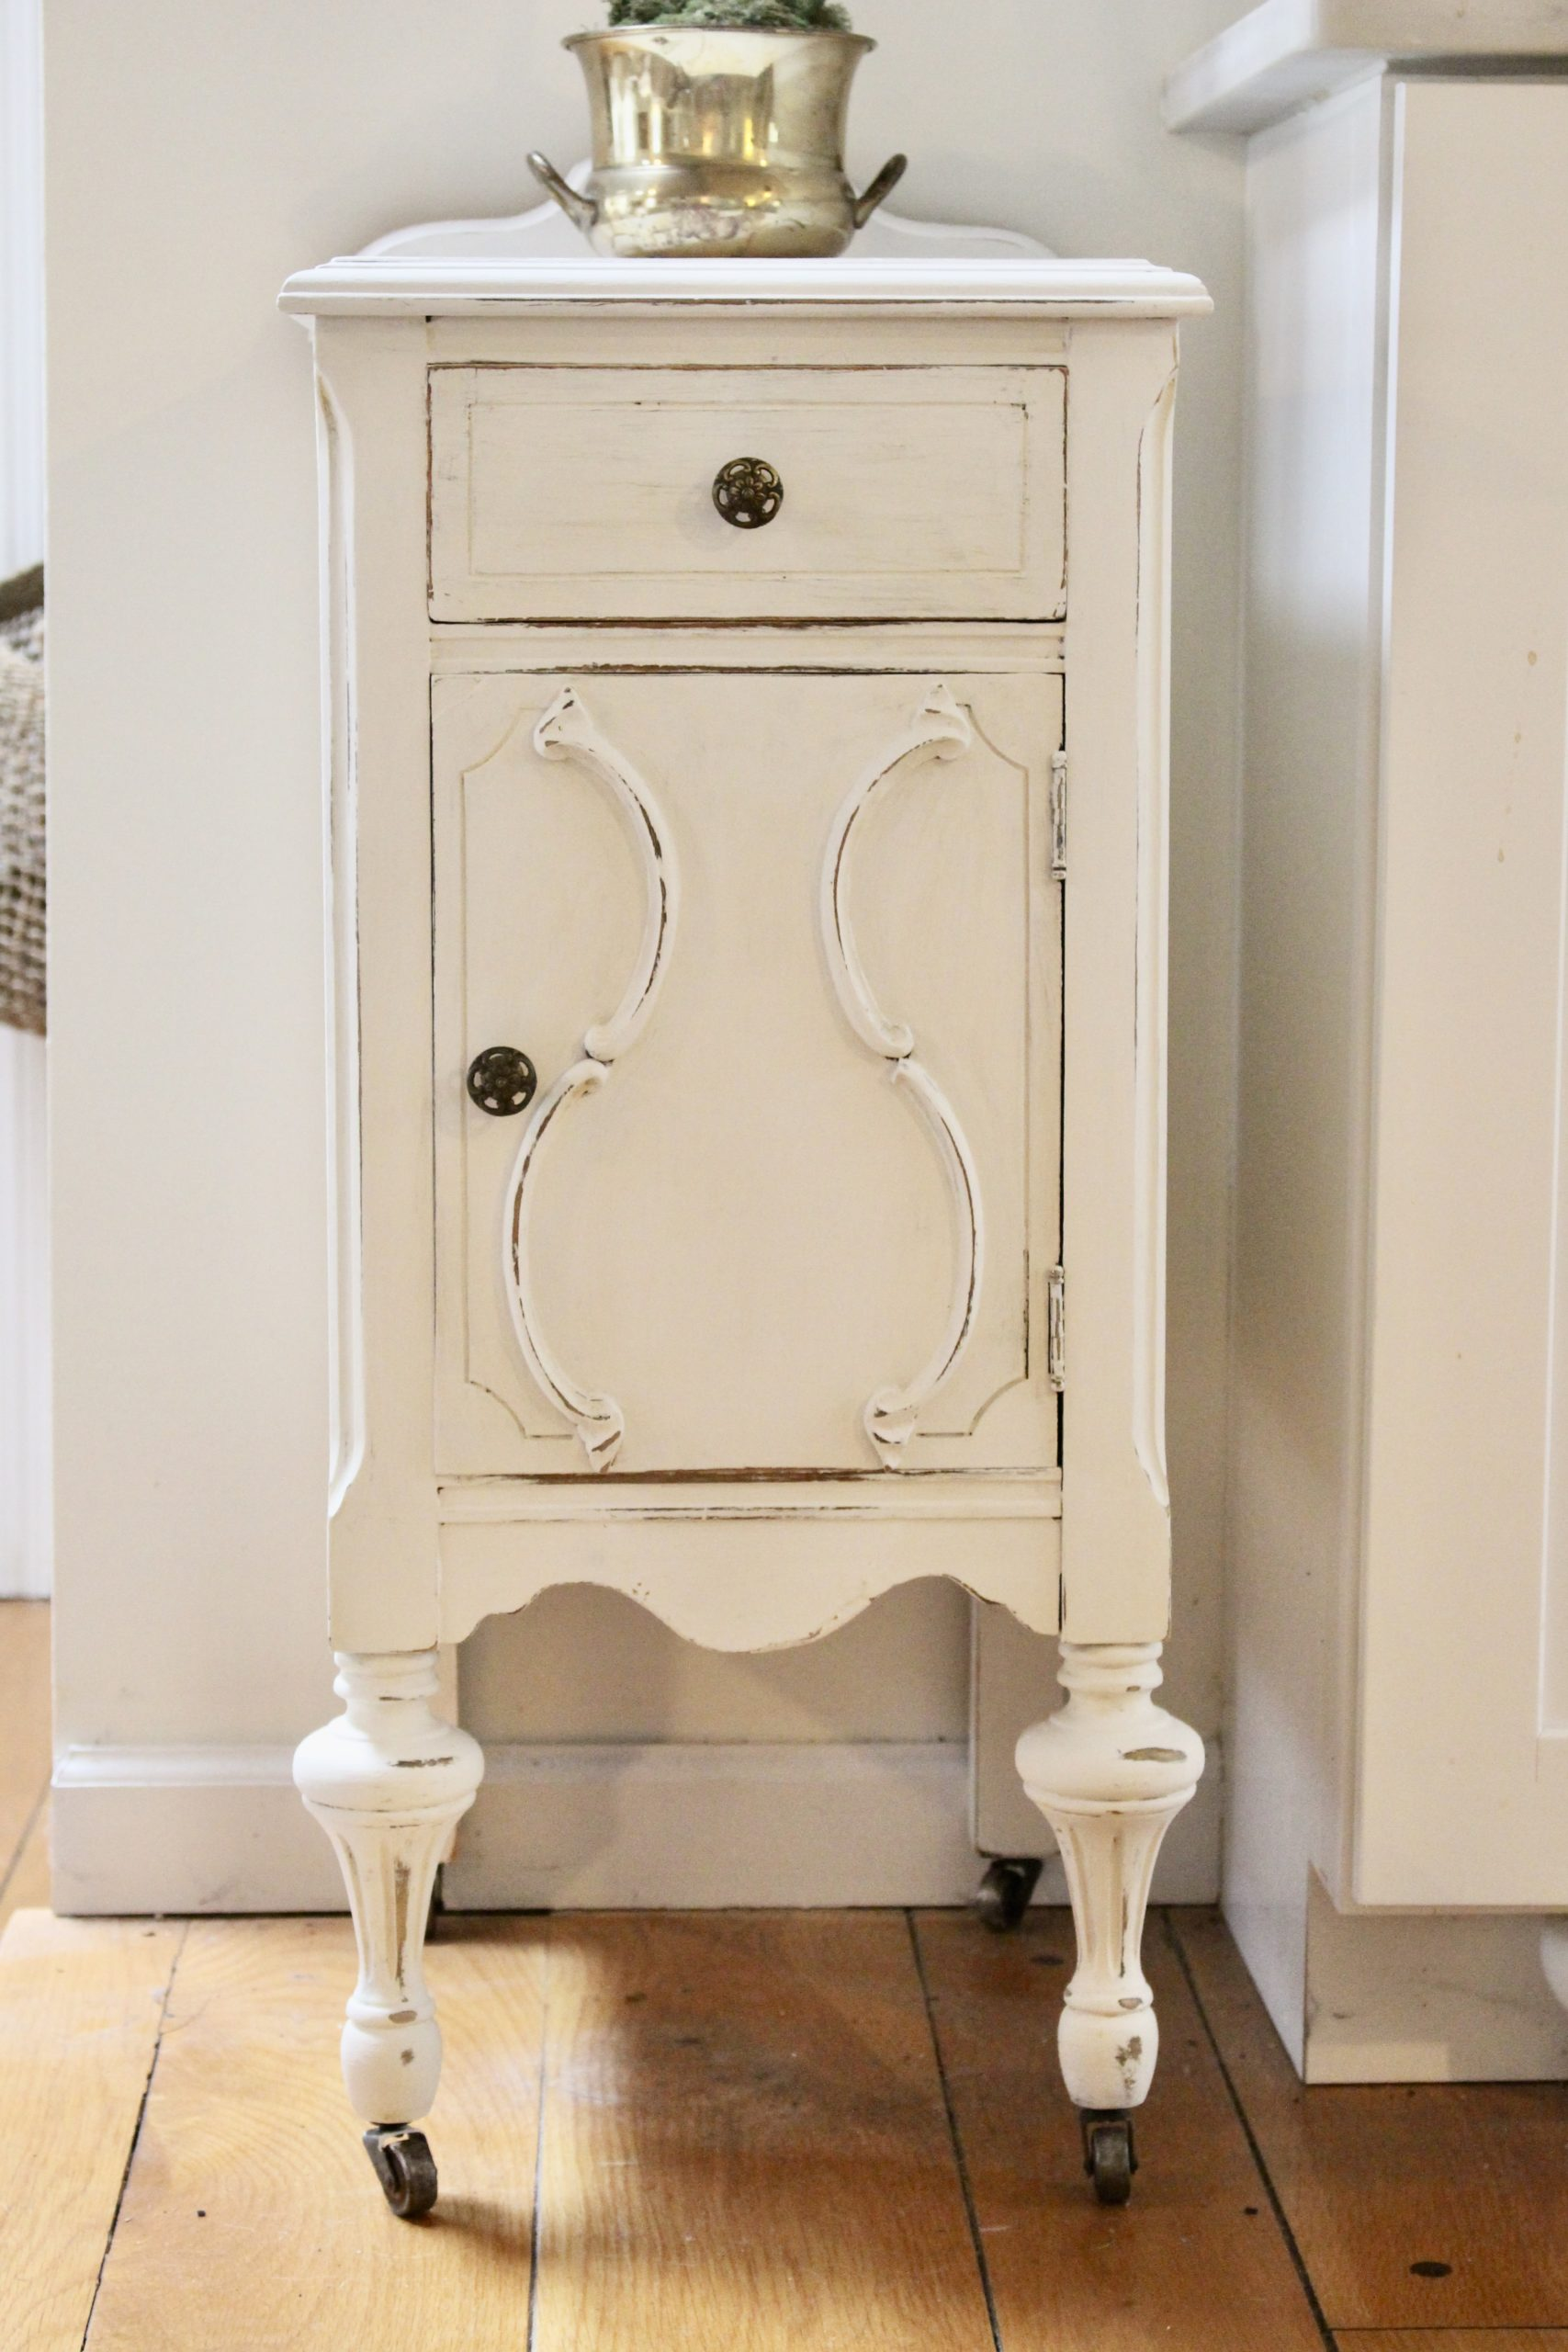 Thrift Store Cabinet Updated with Chalk Paint for a Coffee Bar.- diy- projects- painting furniture- using chalk paint- updating furniture- rusteoleum linen white chalk paint